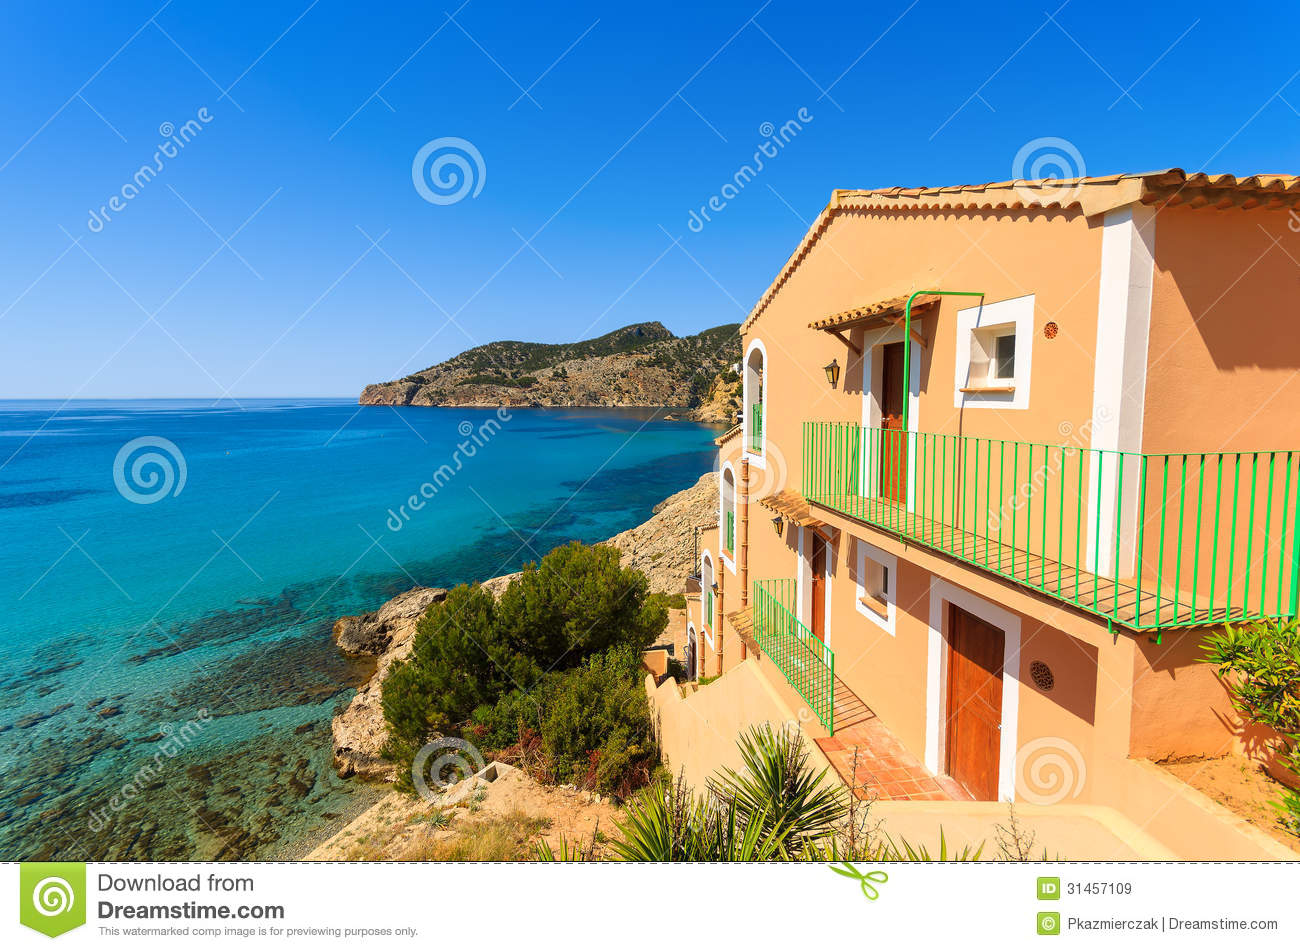 Apartment house view bay beach mountains royalty free for Beach house view